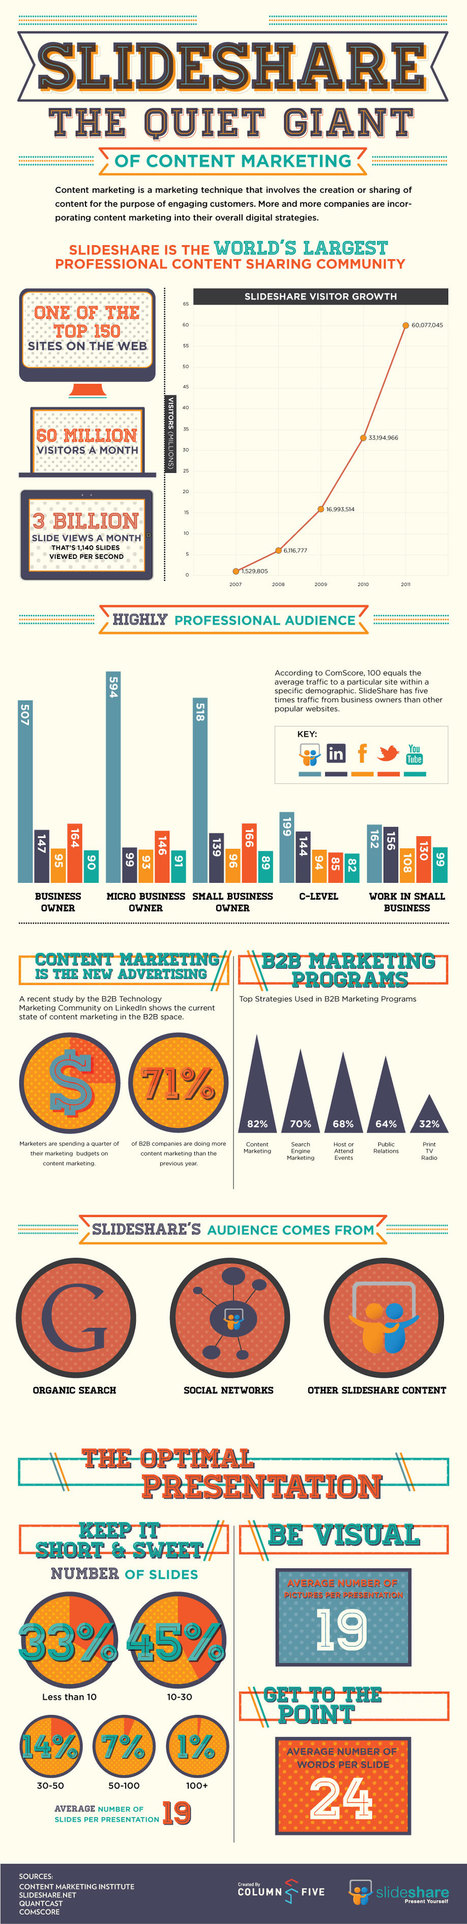 Slideshare Infographic: The Quiet Giant of Content Marketing | Doctor Data | Scoop.it